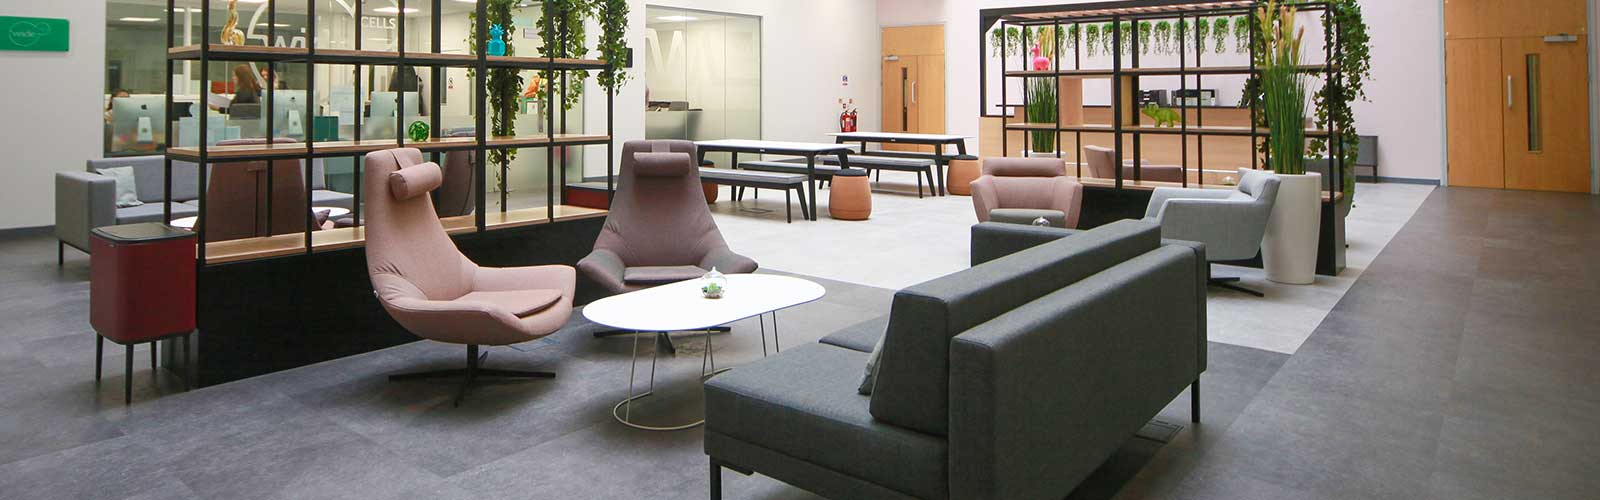 Office refurbishment companies case study in Liverpool and Manchester